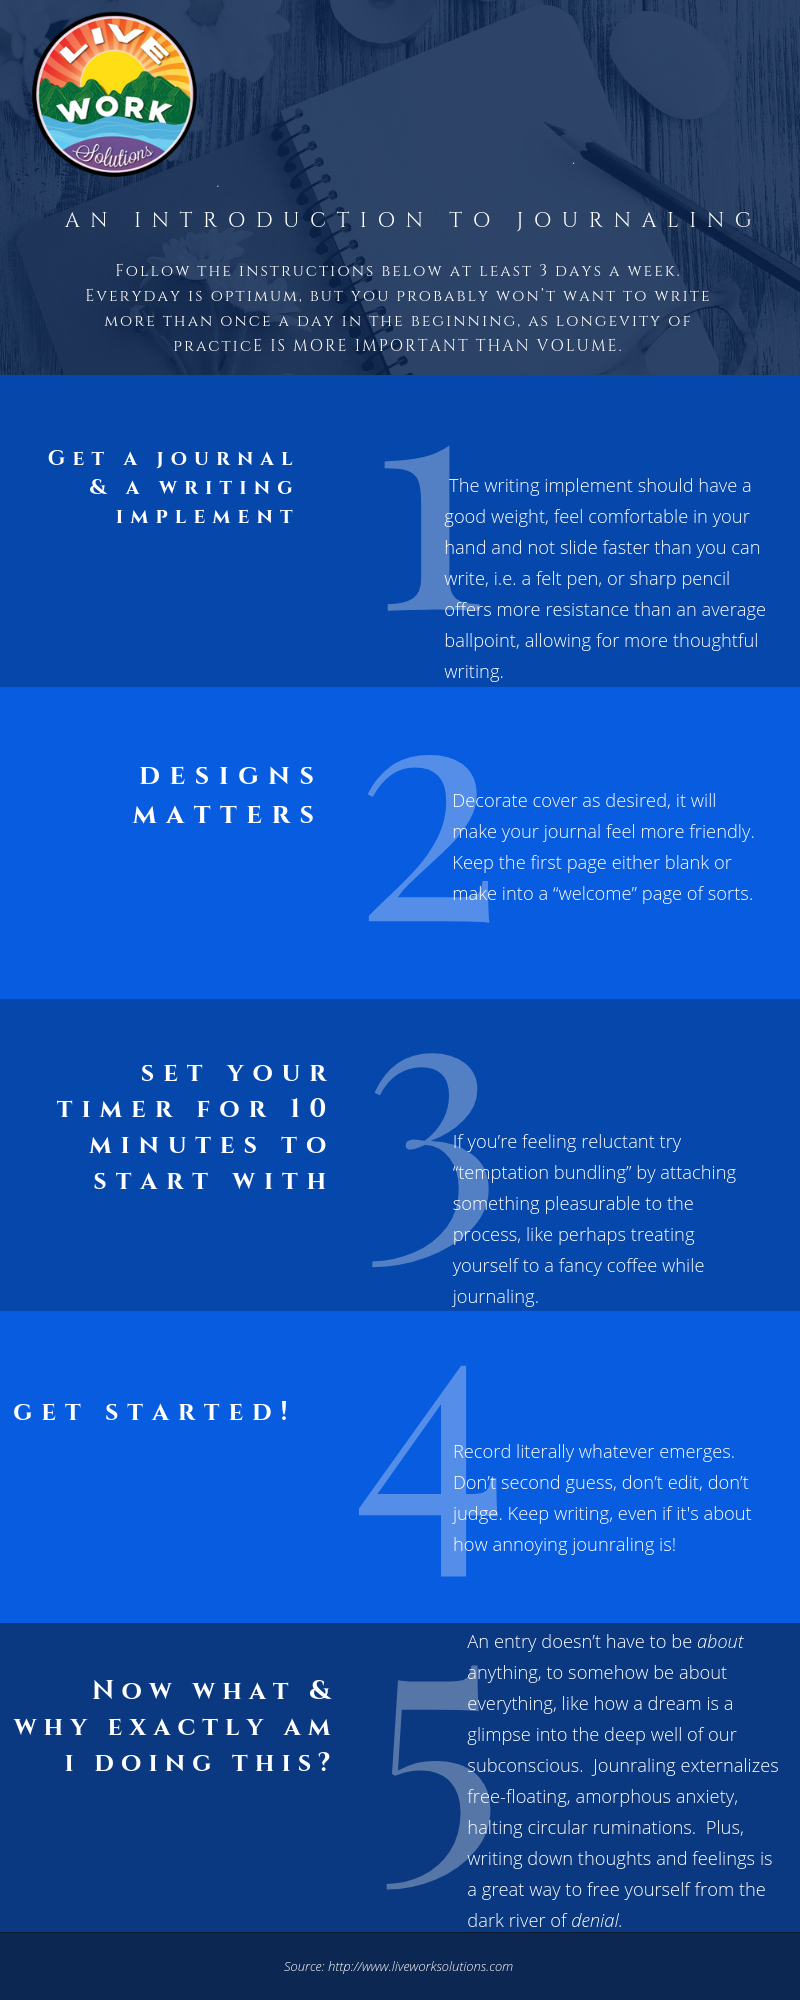 5 Steps to Starting and Keeping a Journal - Download and Share our Free Infographic